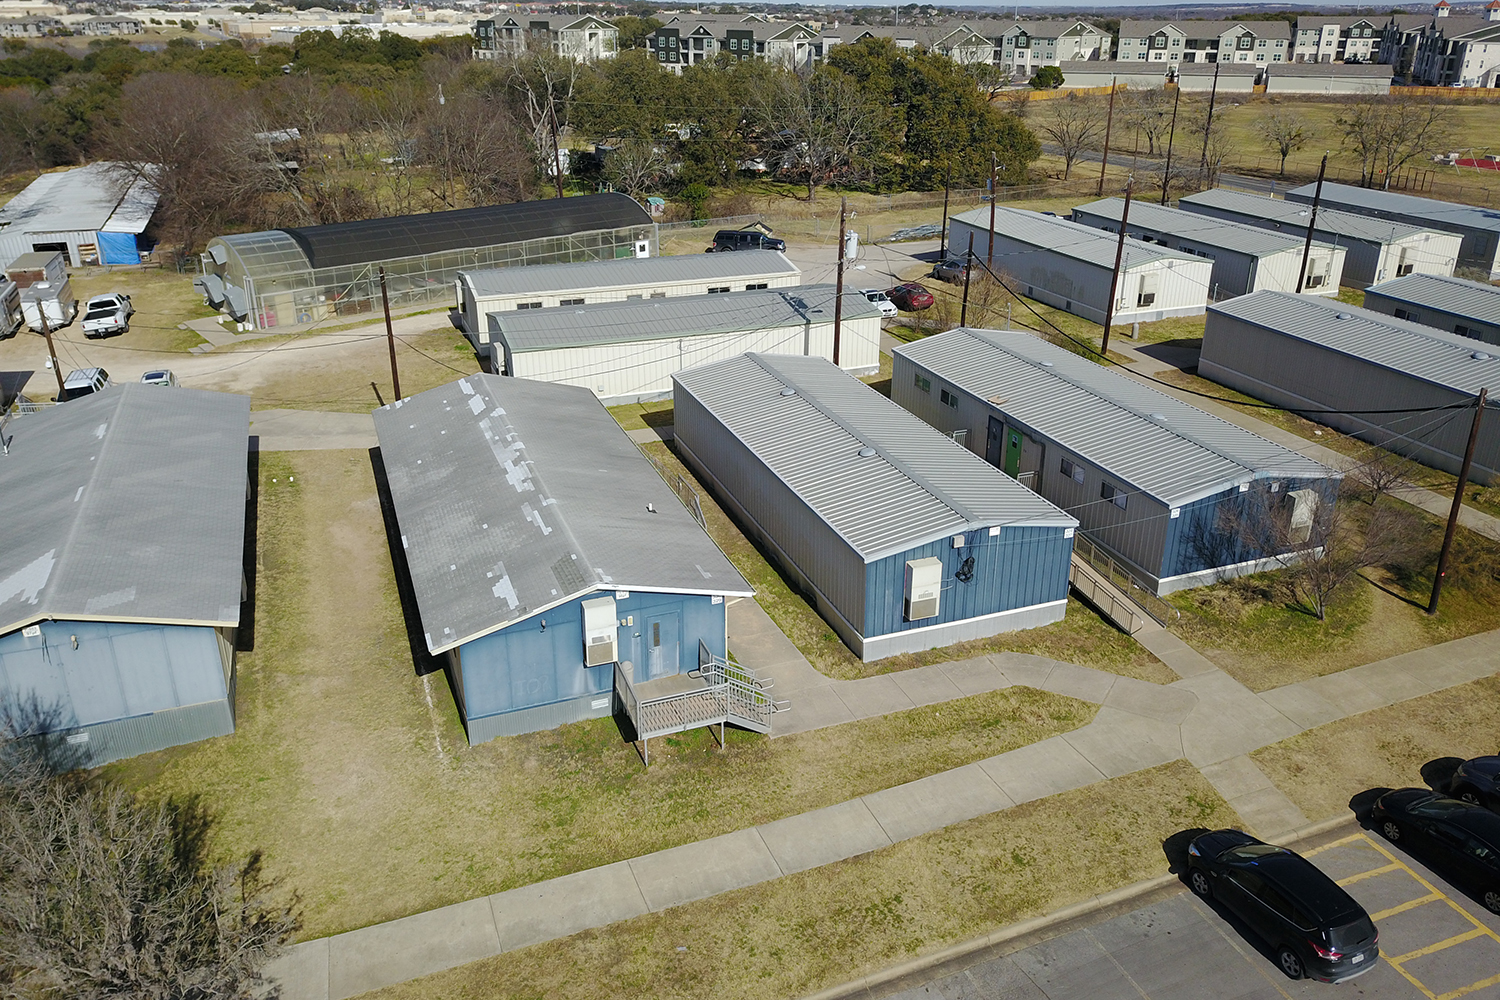 The district is currently in the process of assessing what portables are in need of removal, and it isn't known if any of the portables on the Akins campus will be replaced